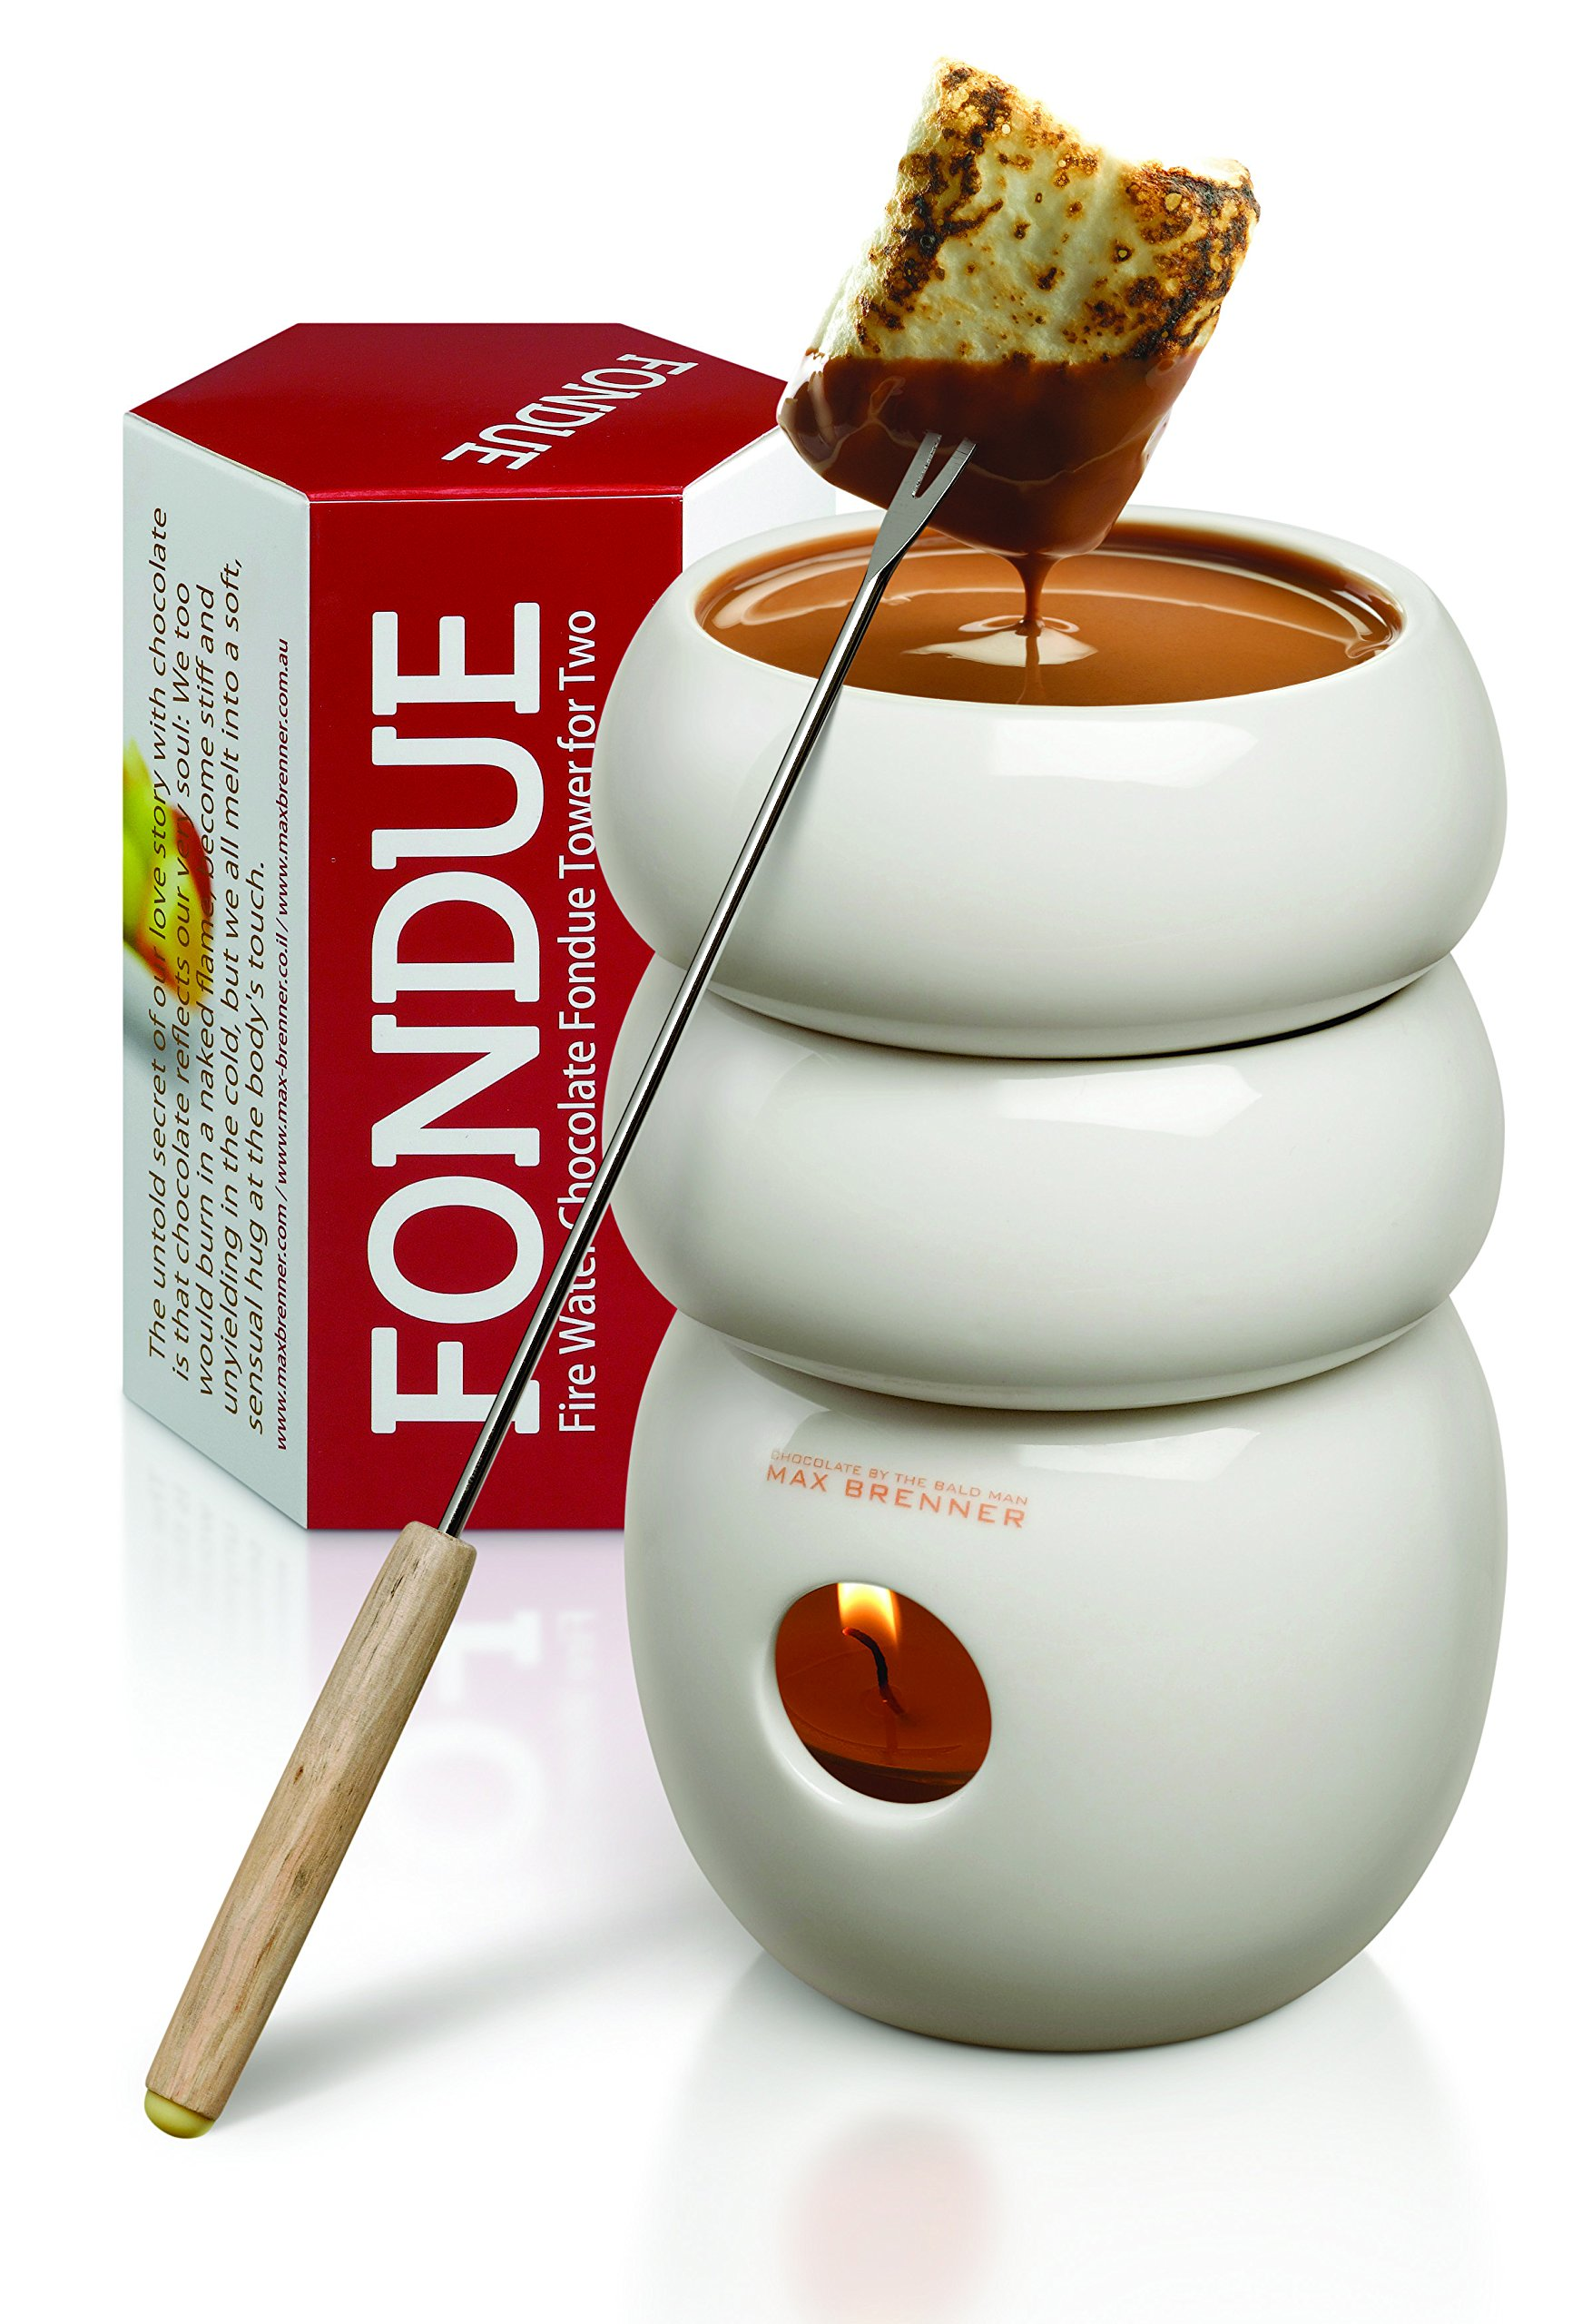 Fire Water Chocolate Fondue Tower for Two: White Ceramic 3 Ounce Double-Decker Mini Pot Boiler and Candle Holder Melter with 2 Forks by Max Brenner